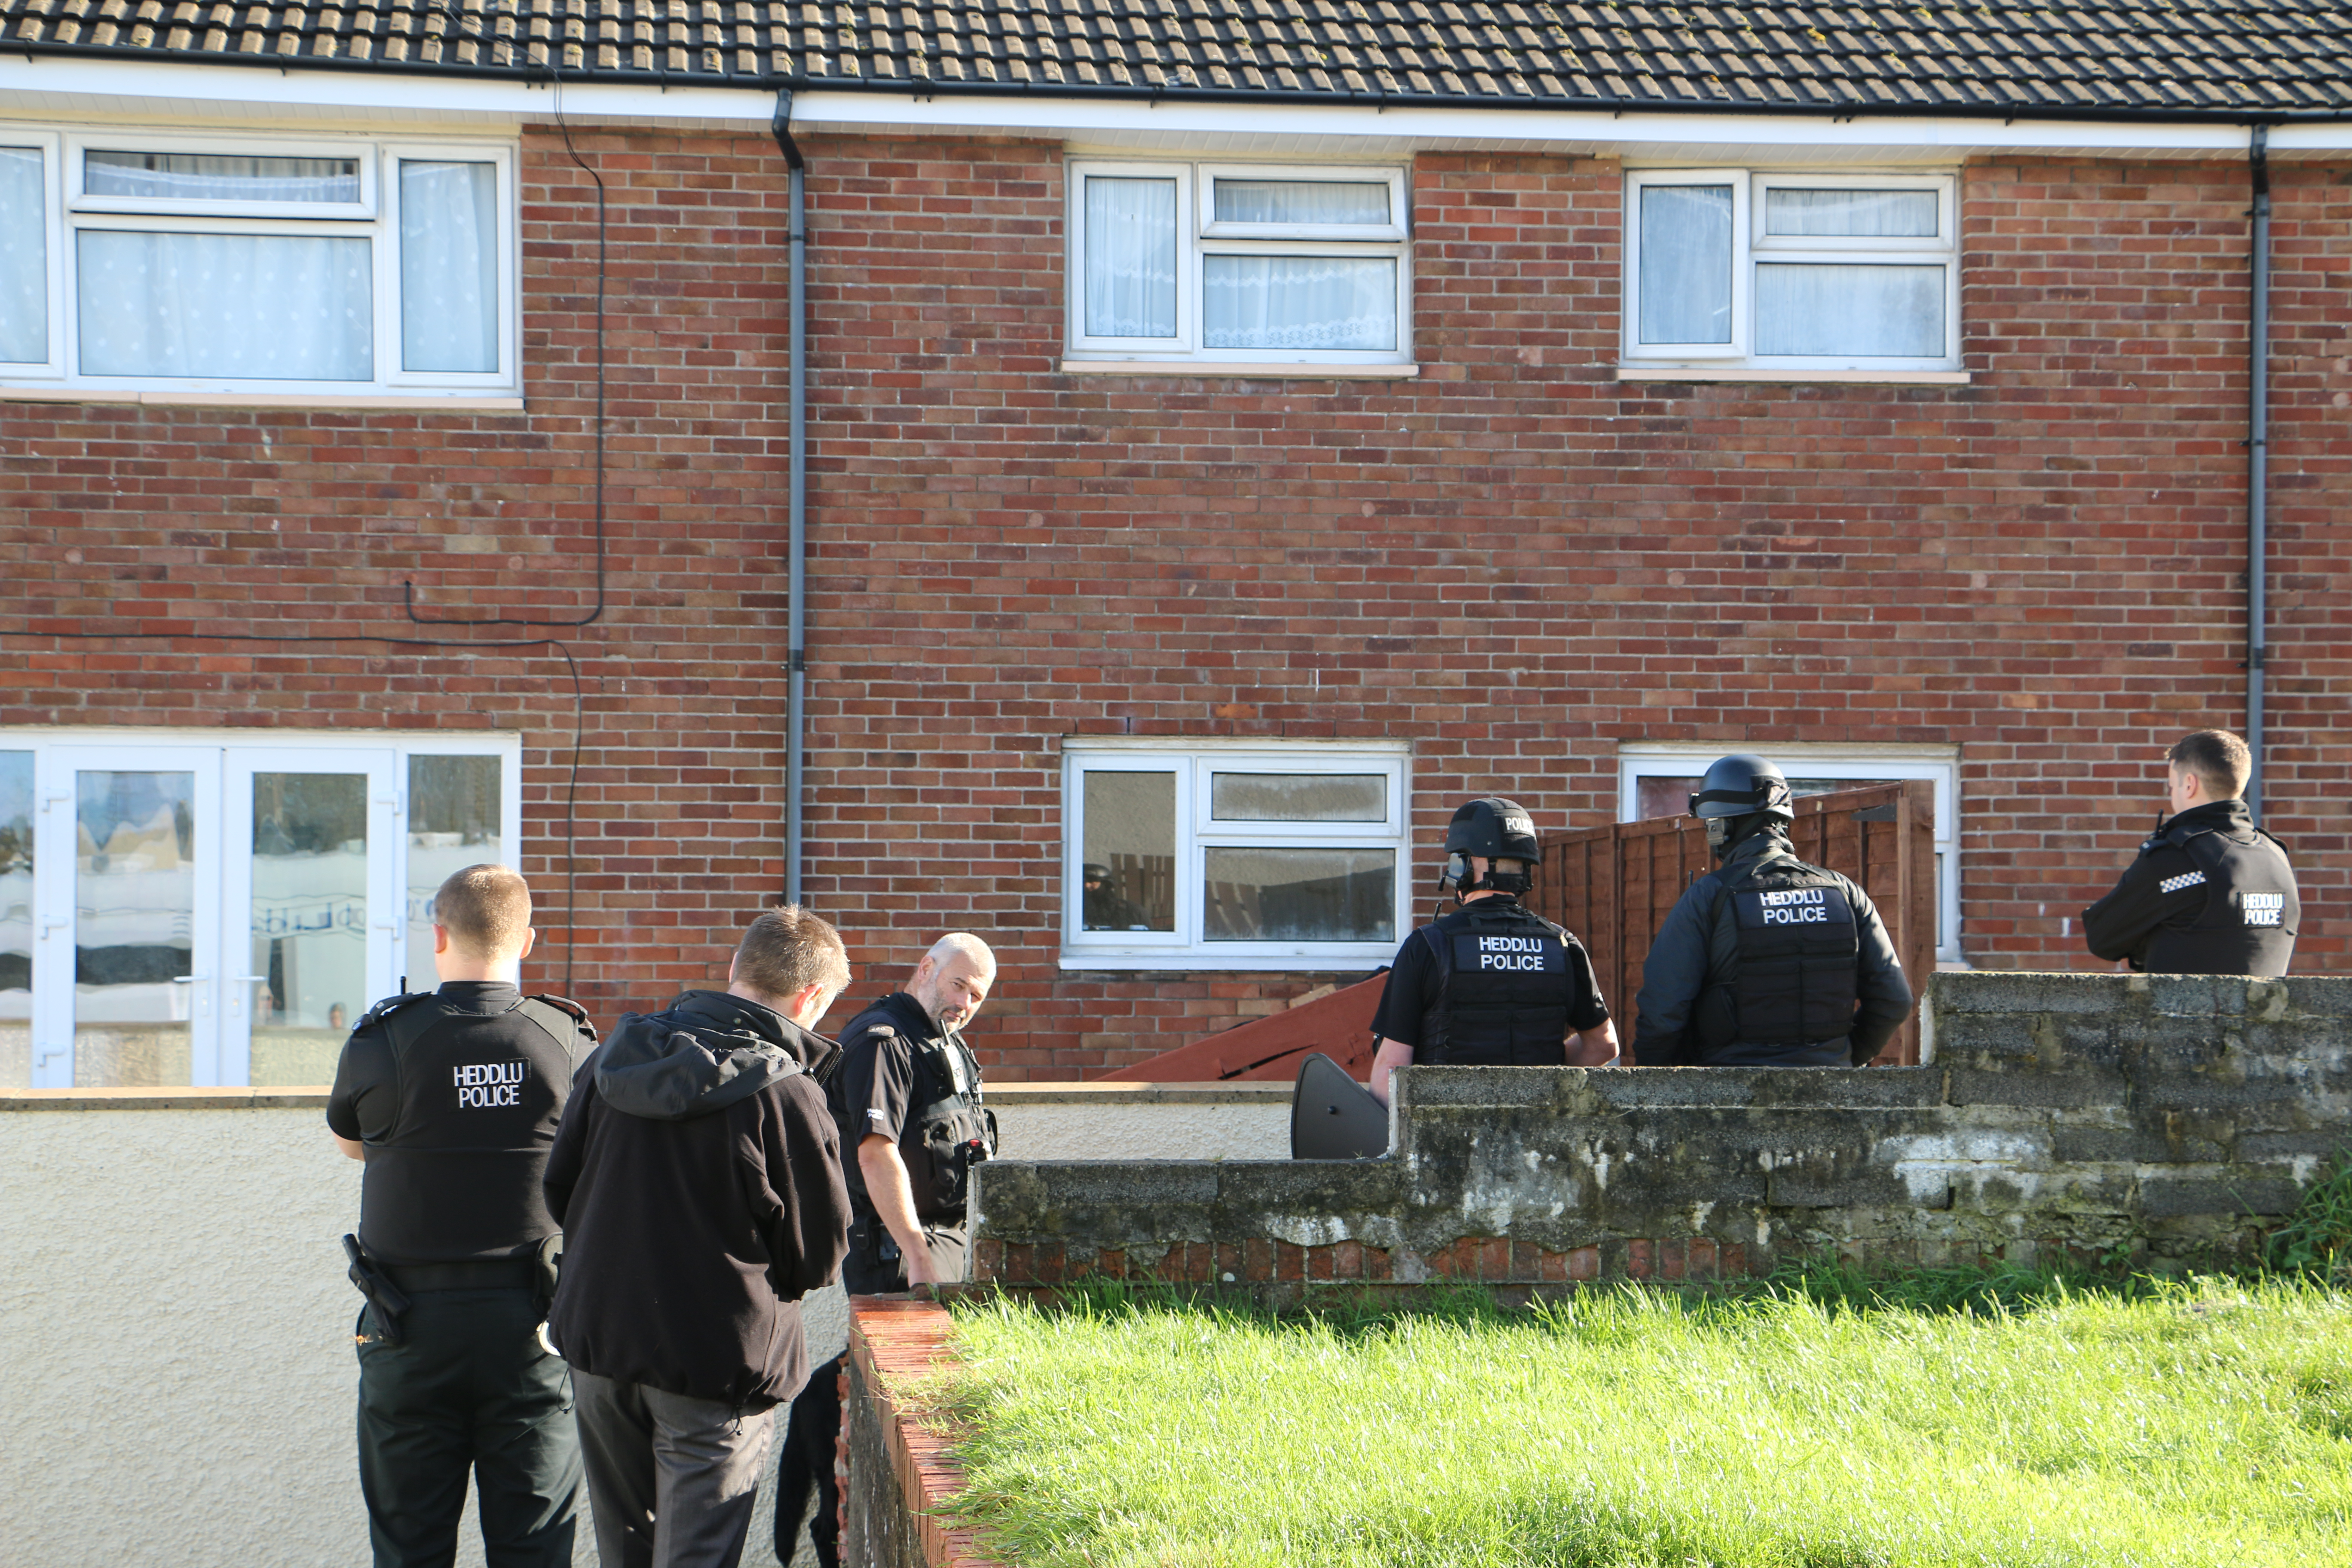 Stand-off: Police at Monkton flat